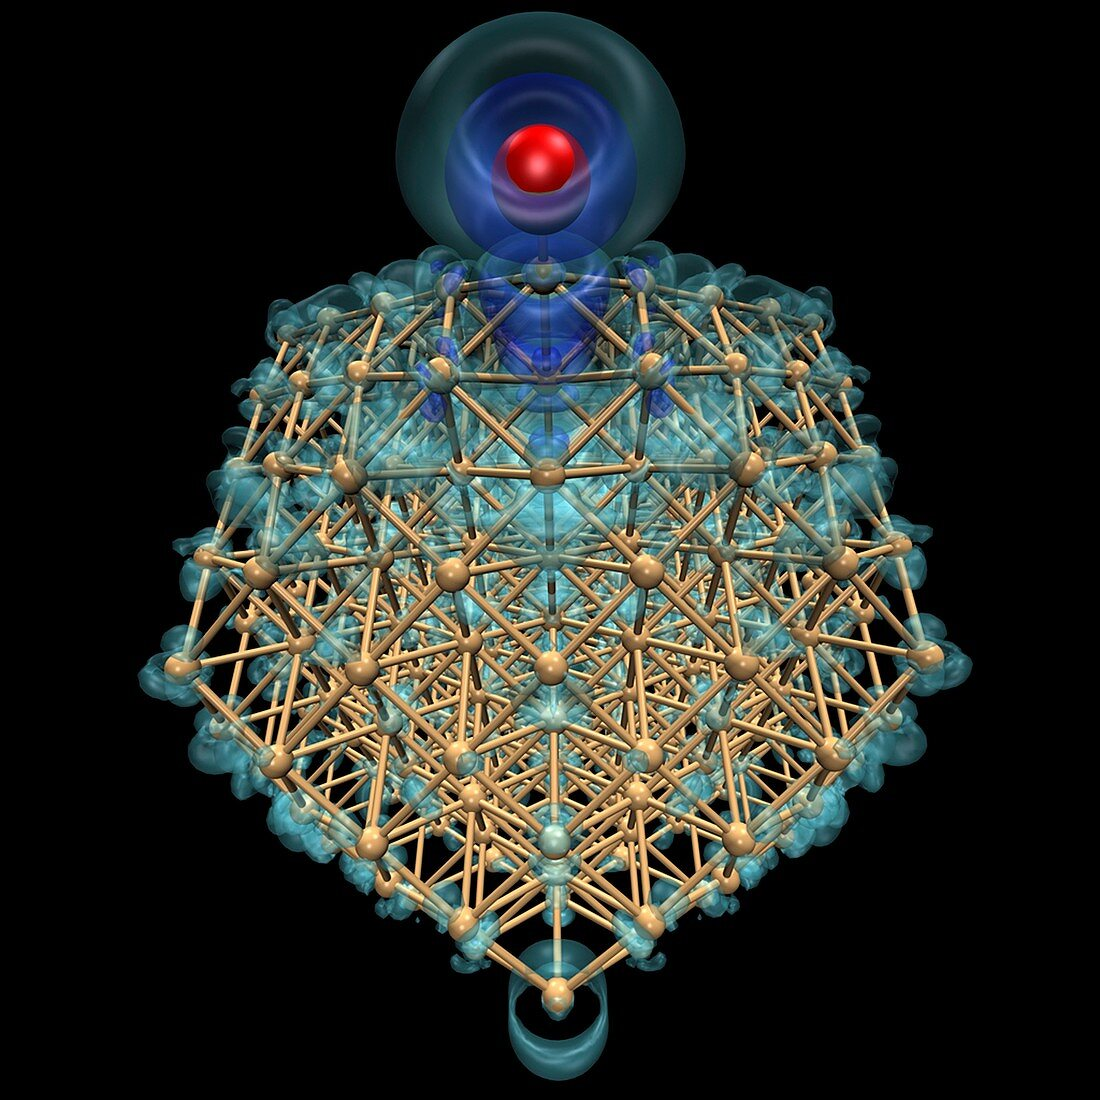 Gold nanoparticle catalyst modelling